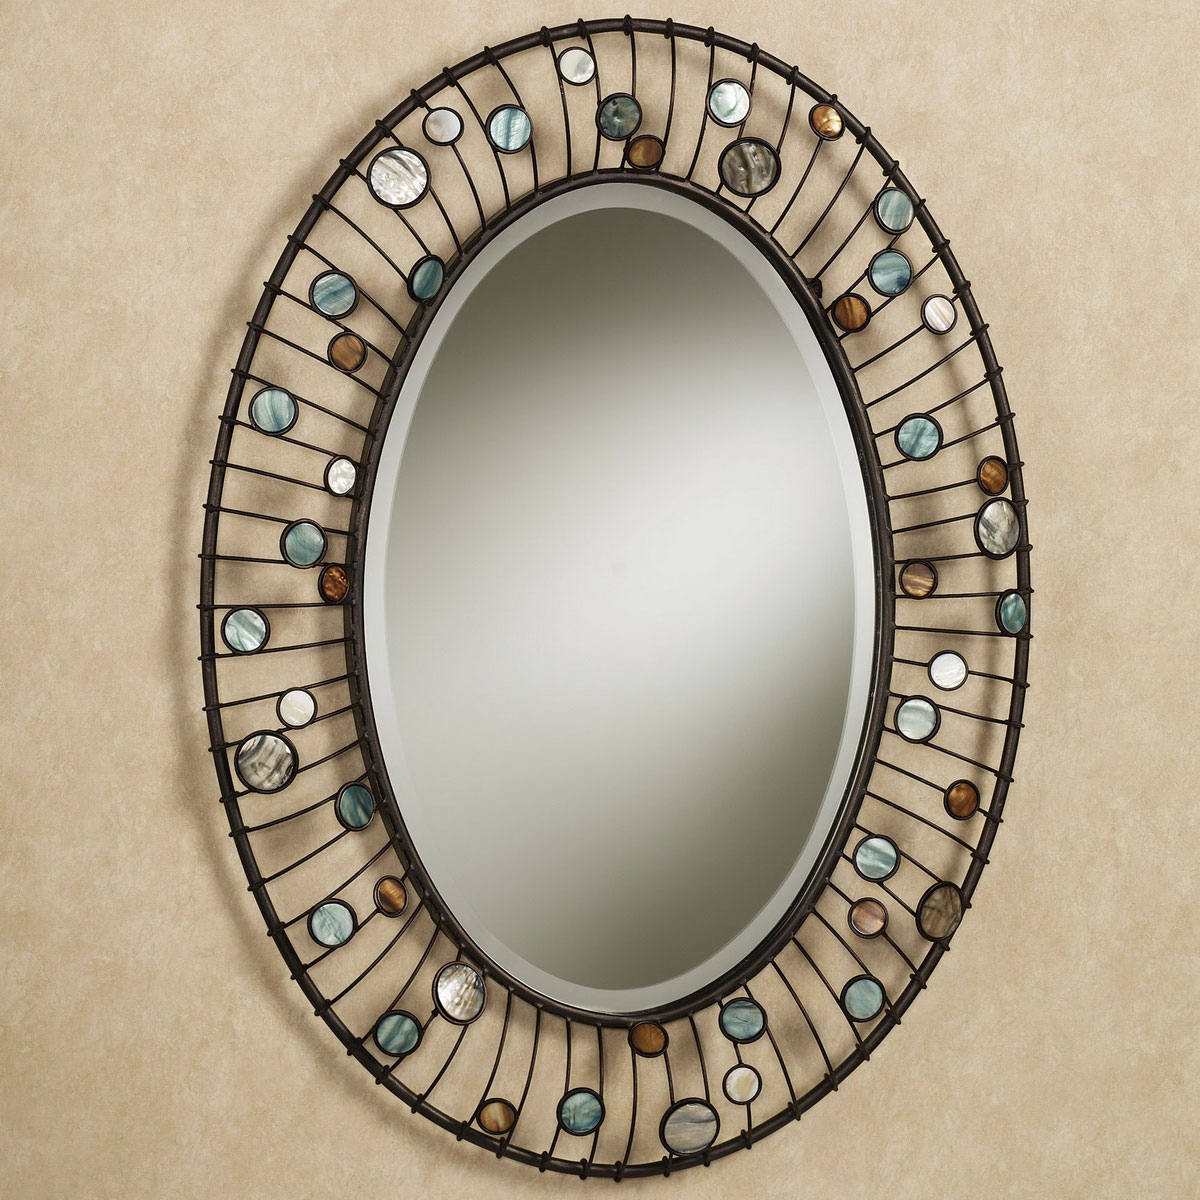 Frame For Oval Bathroom Mirror